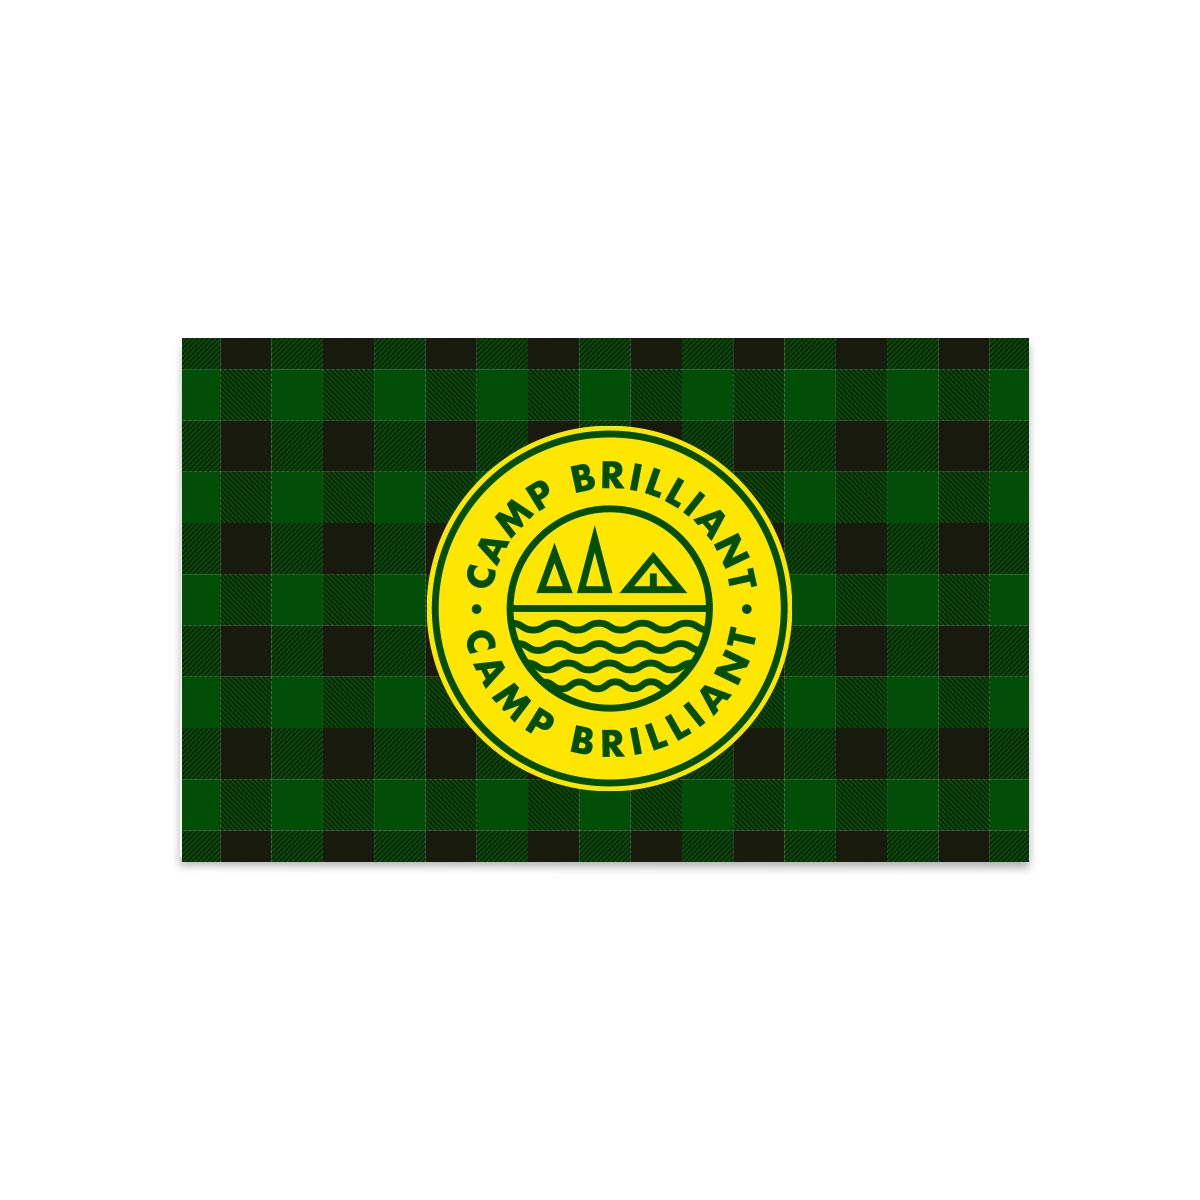 229177 3 x 5 flag full color digital imprint